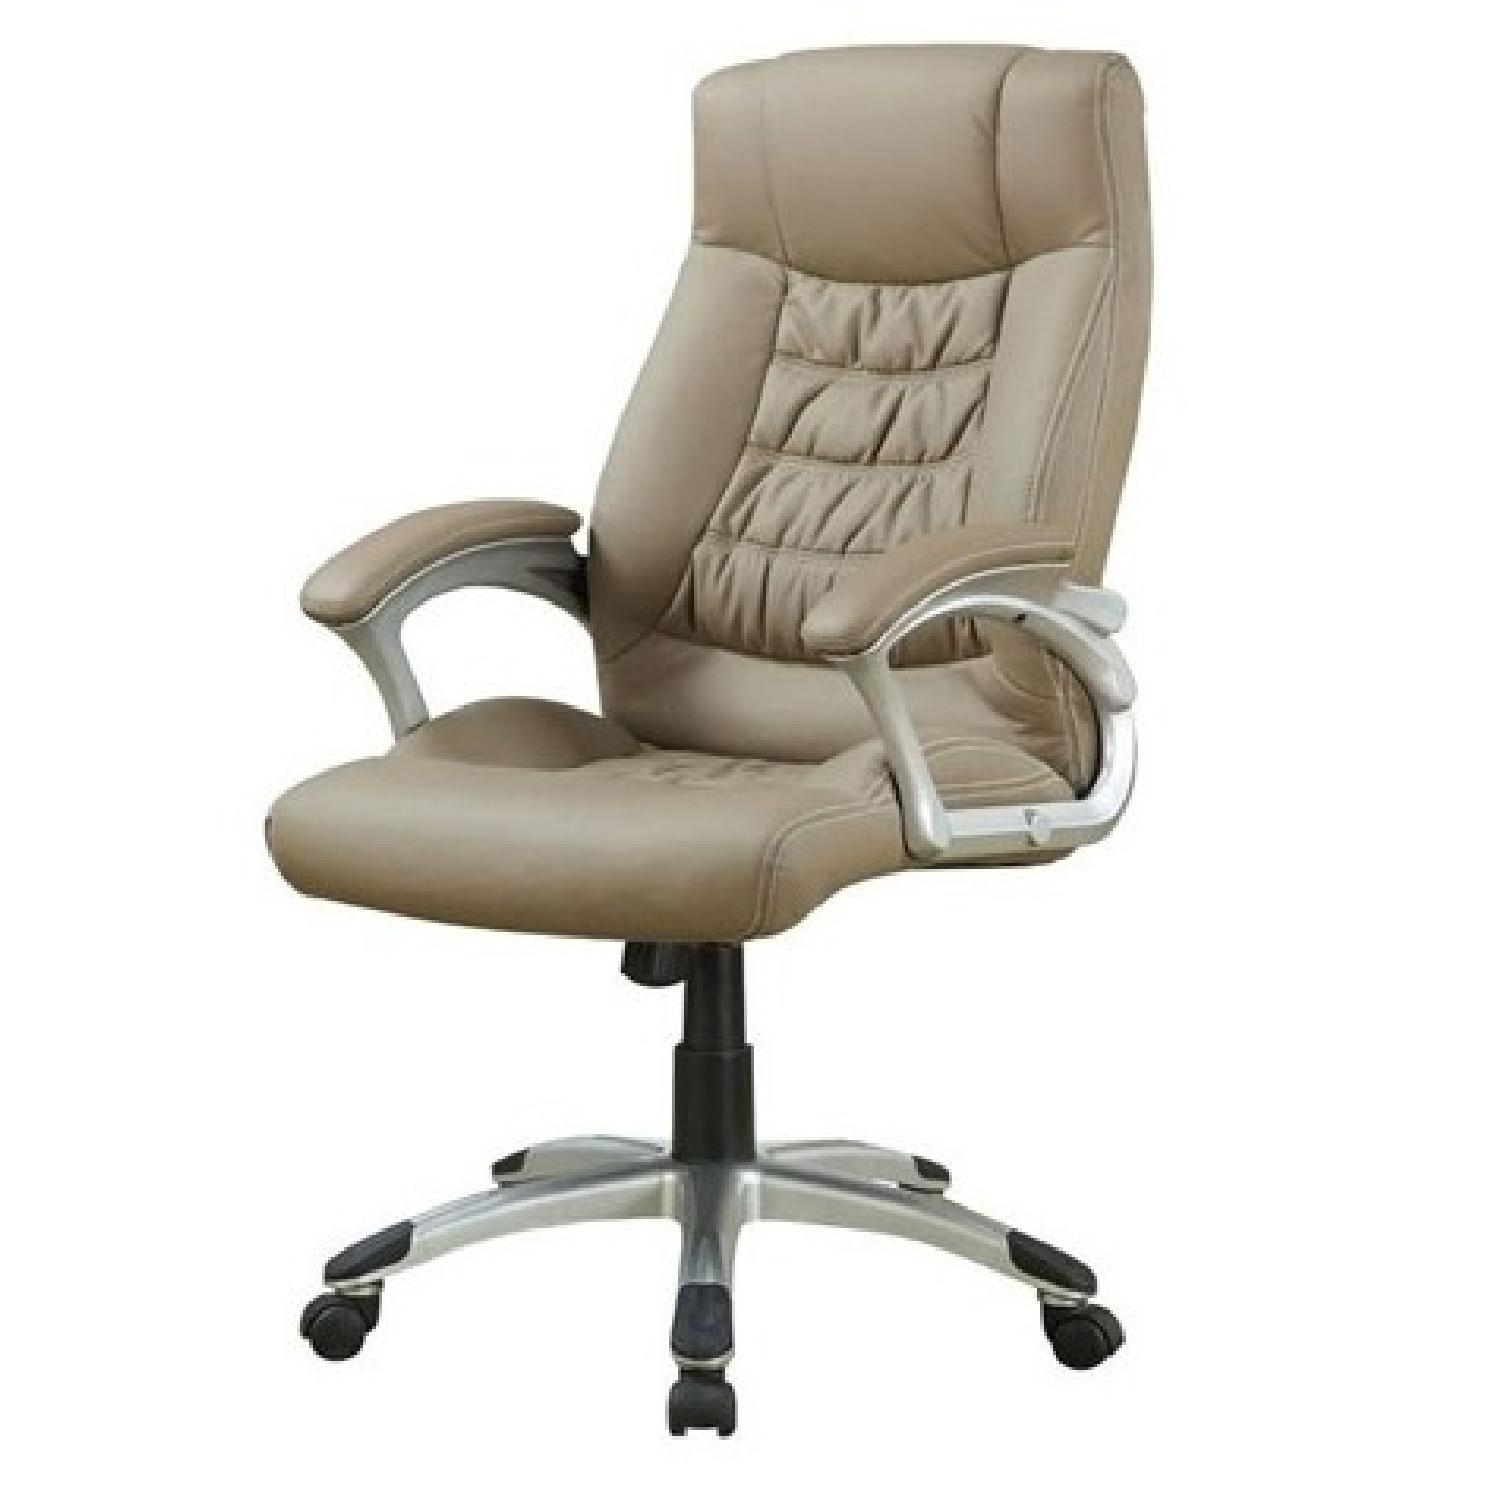 Contemporary Upholstered Executive Chair in Taupe Leatherette